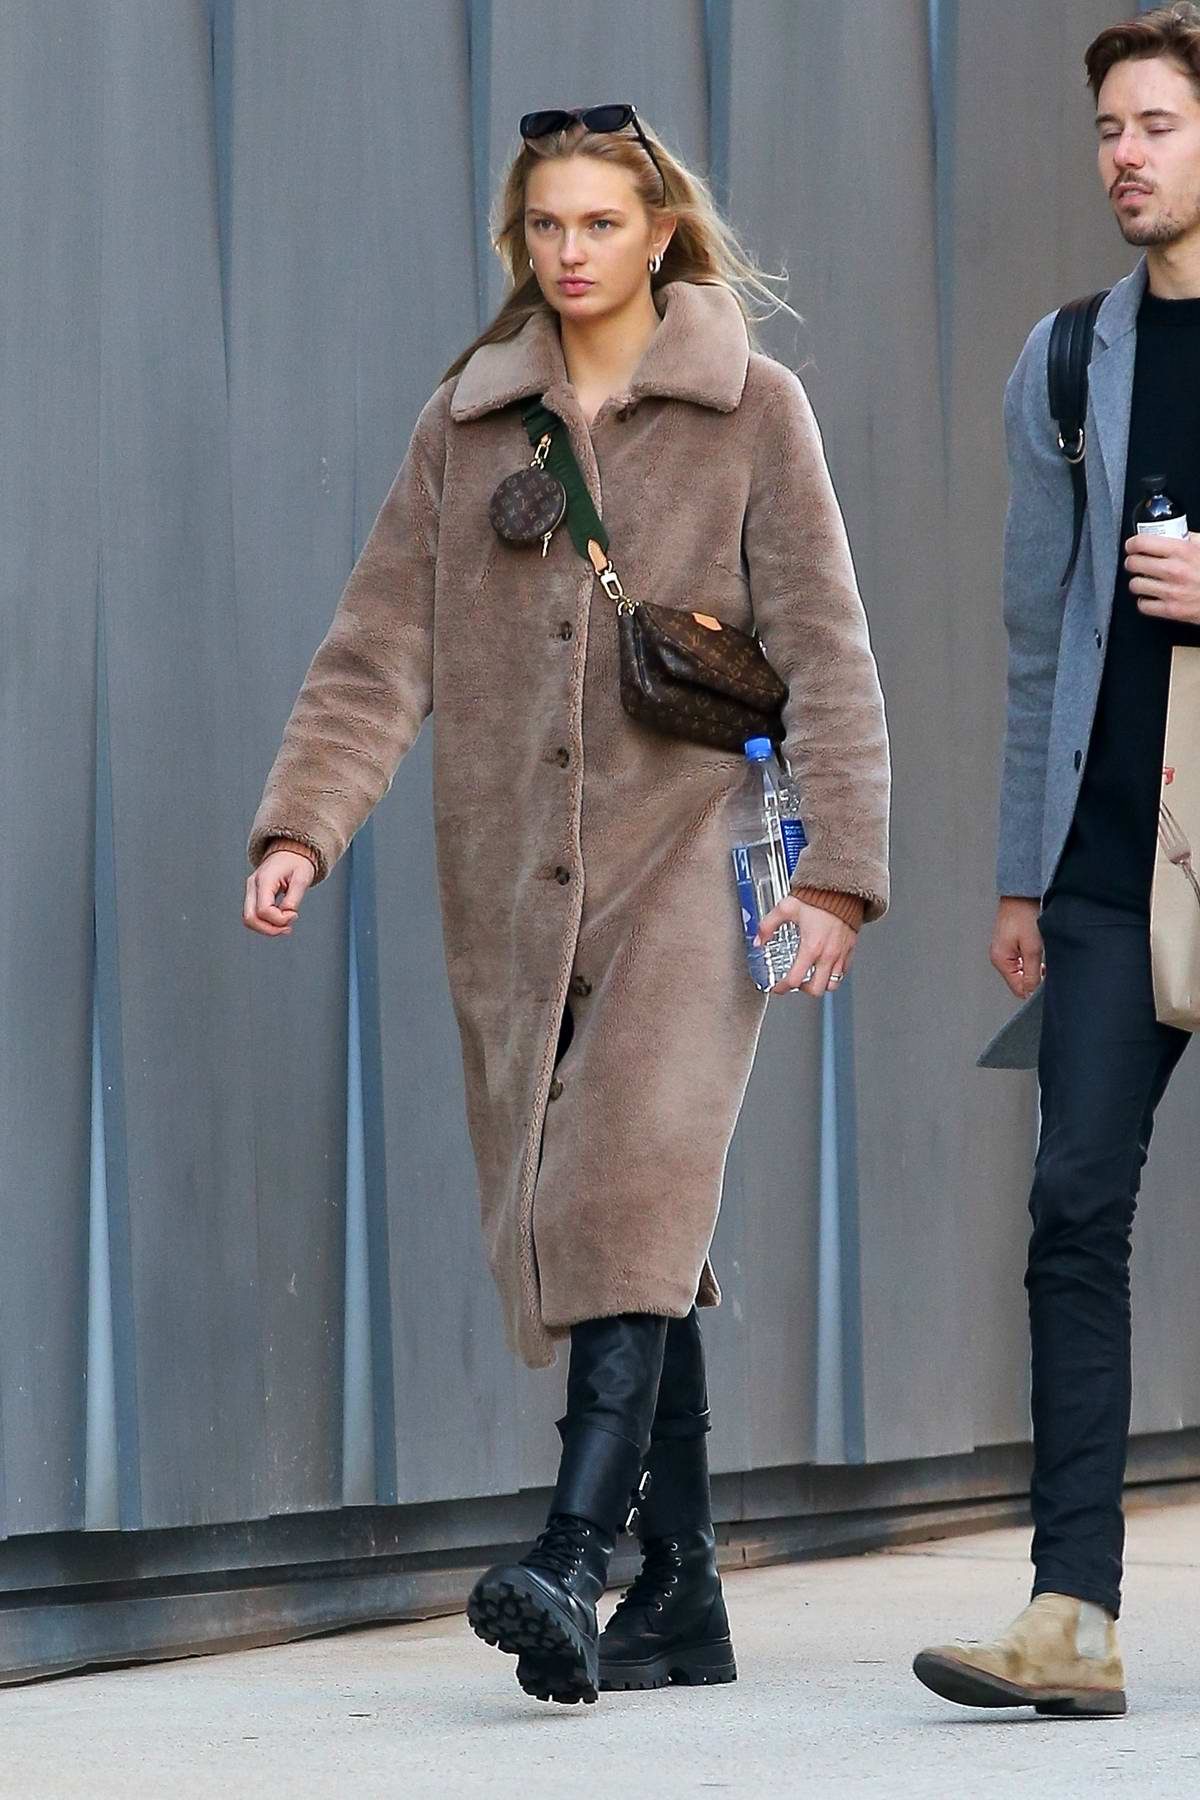 Romee Strijd bundles up in a cozy brown coat while out for a stroll with Laurens van Leeuwen in New York City